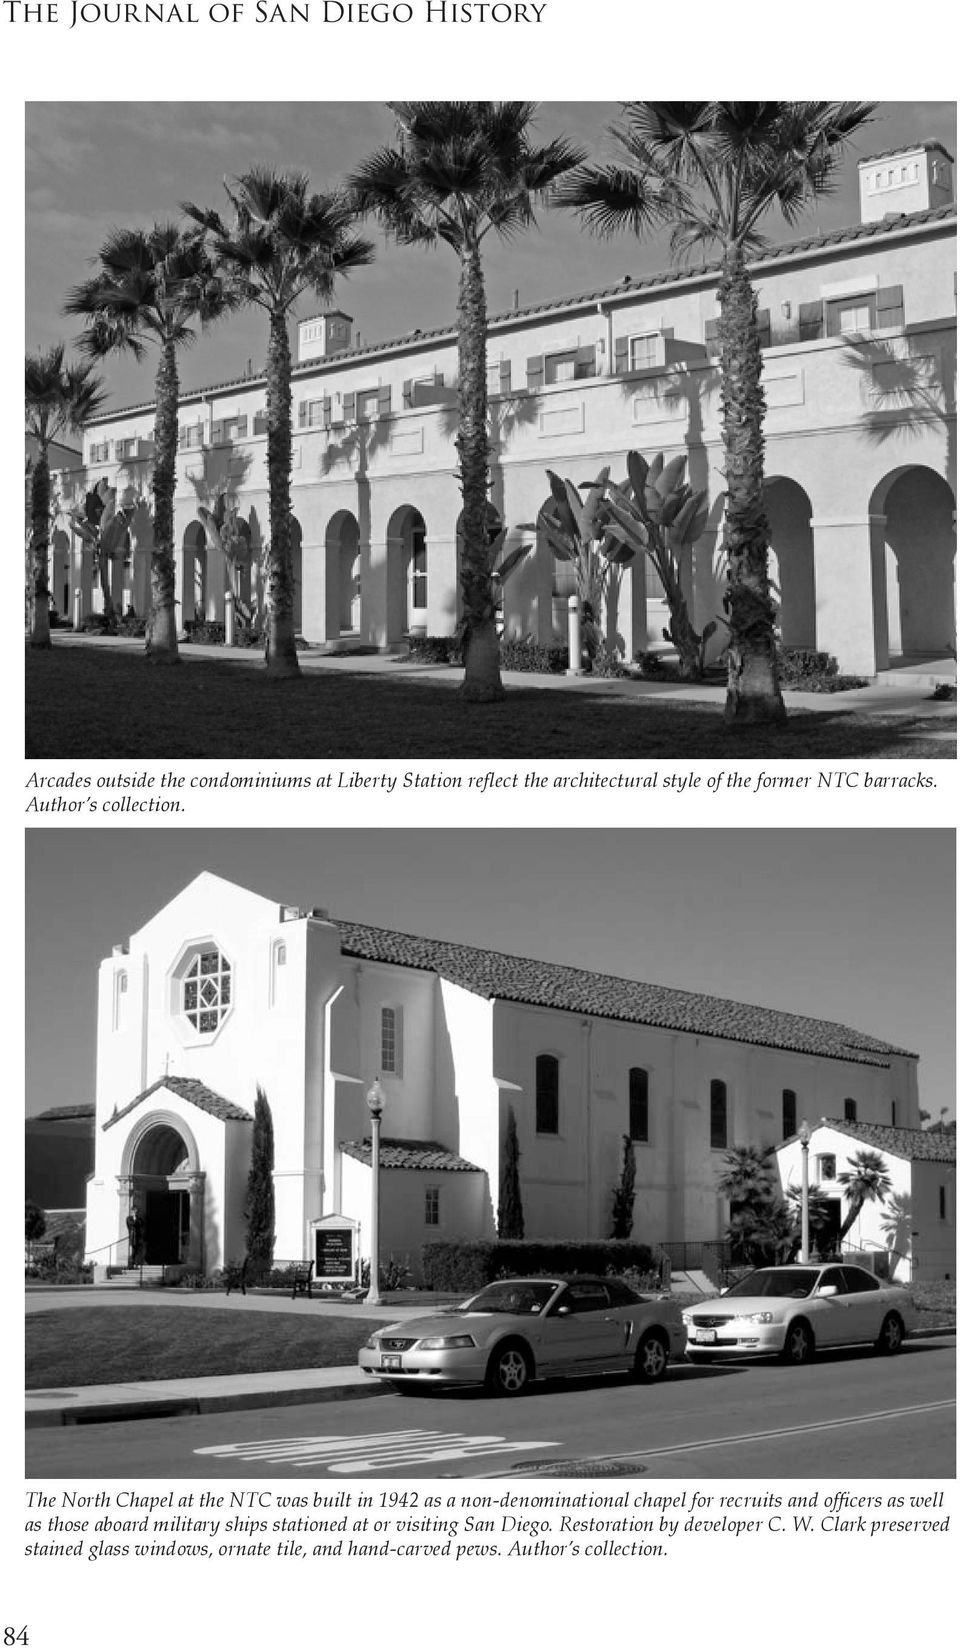 The North Chapel at the NTC was built in 1942 as a non-denominational chapel for recruits and officers as well as